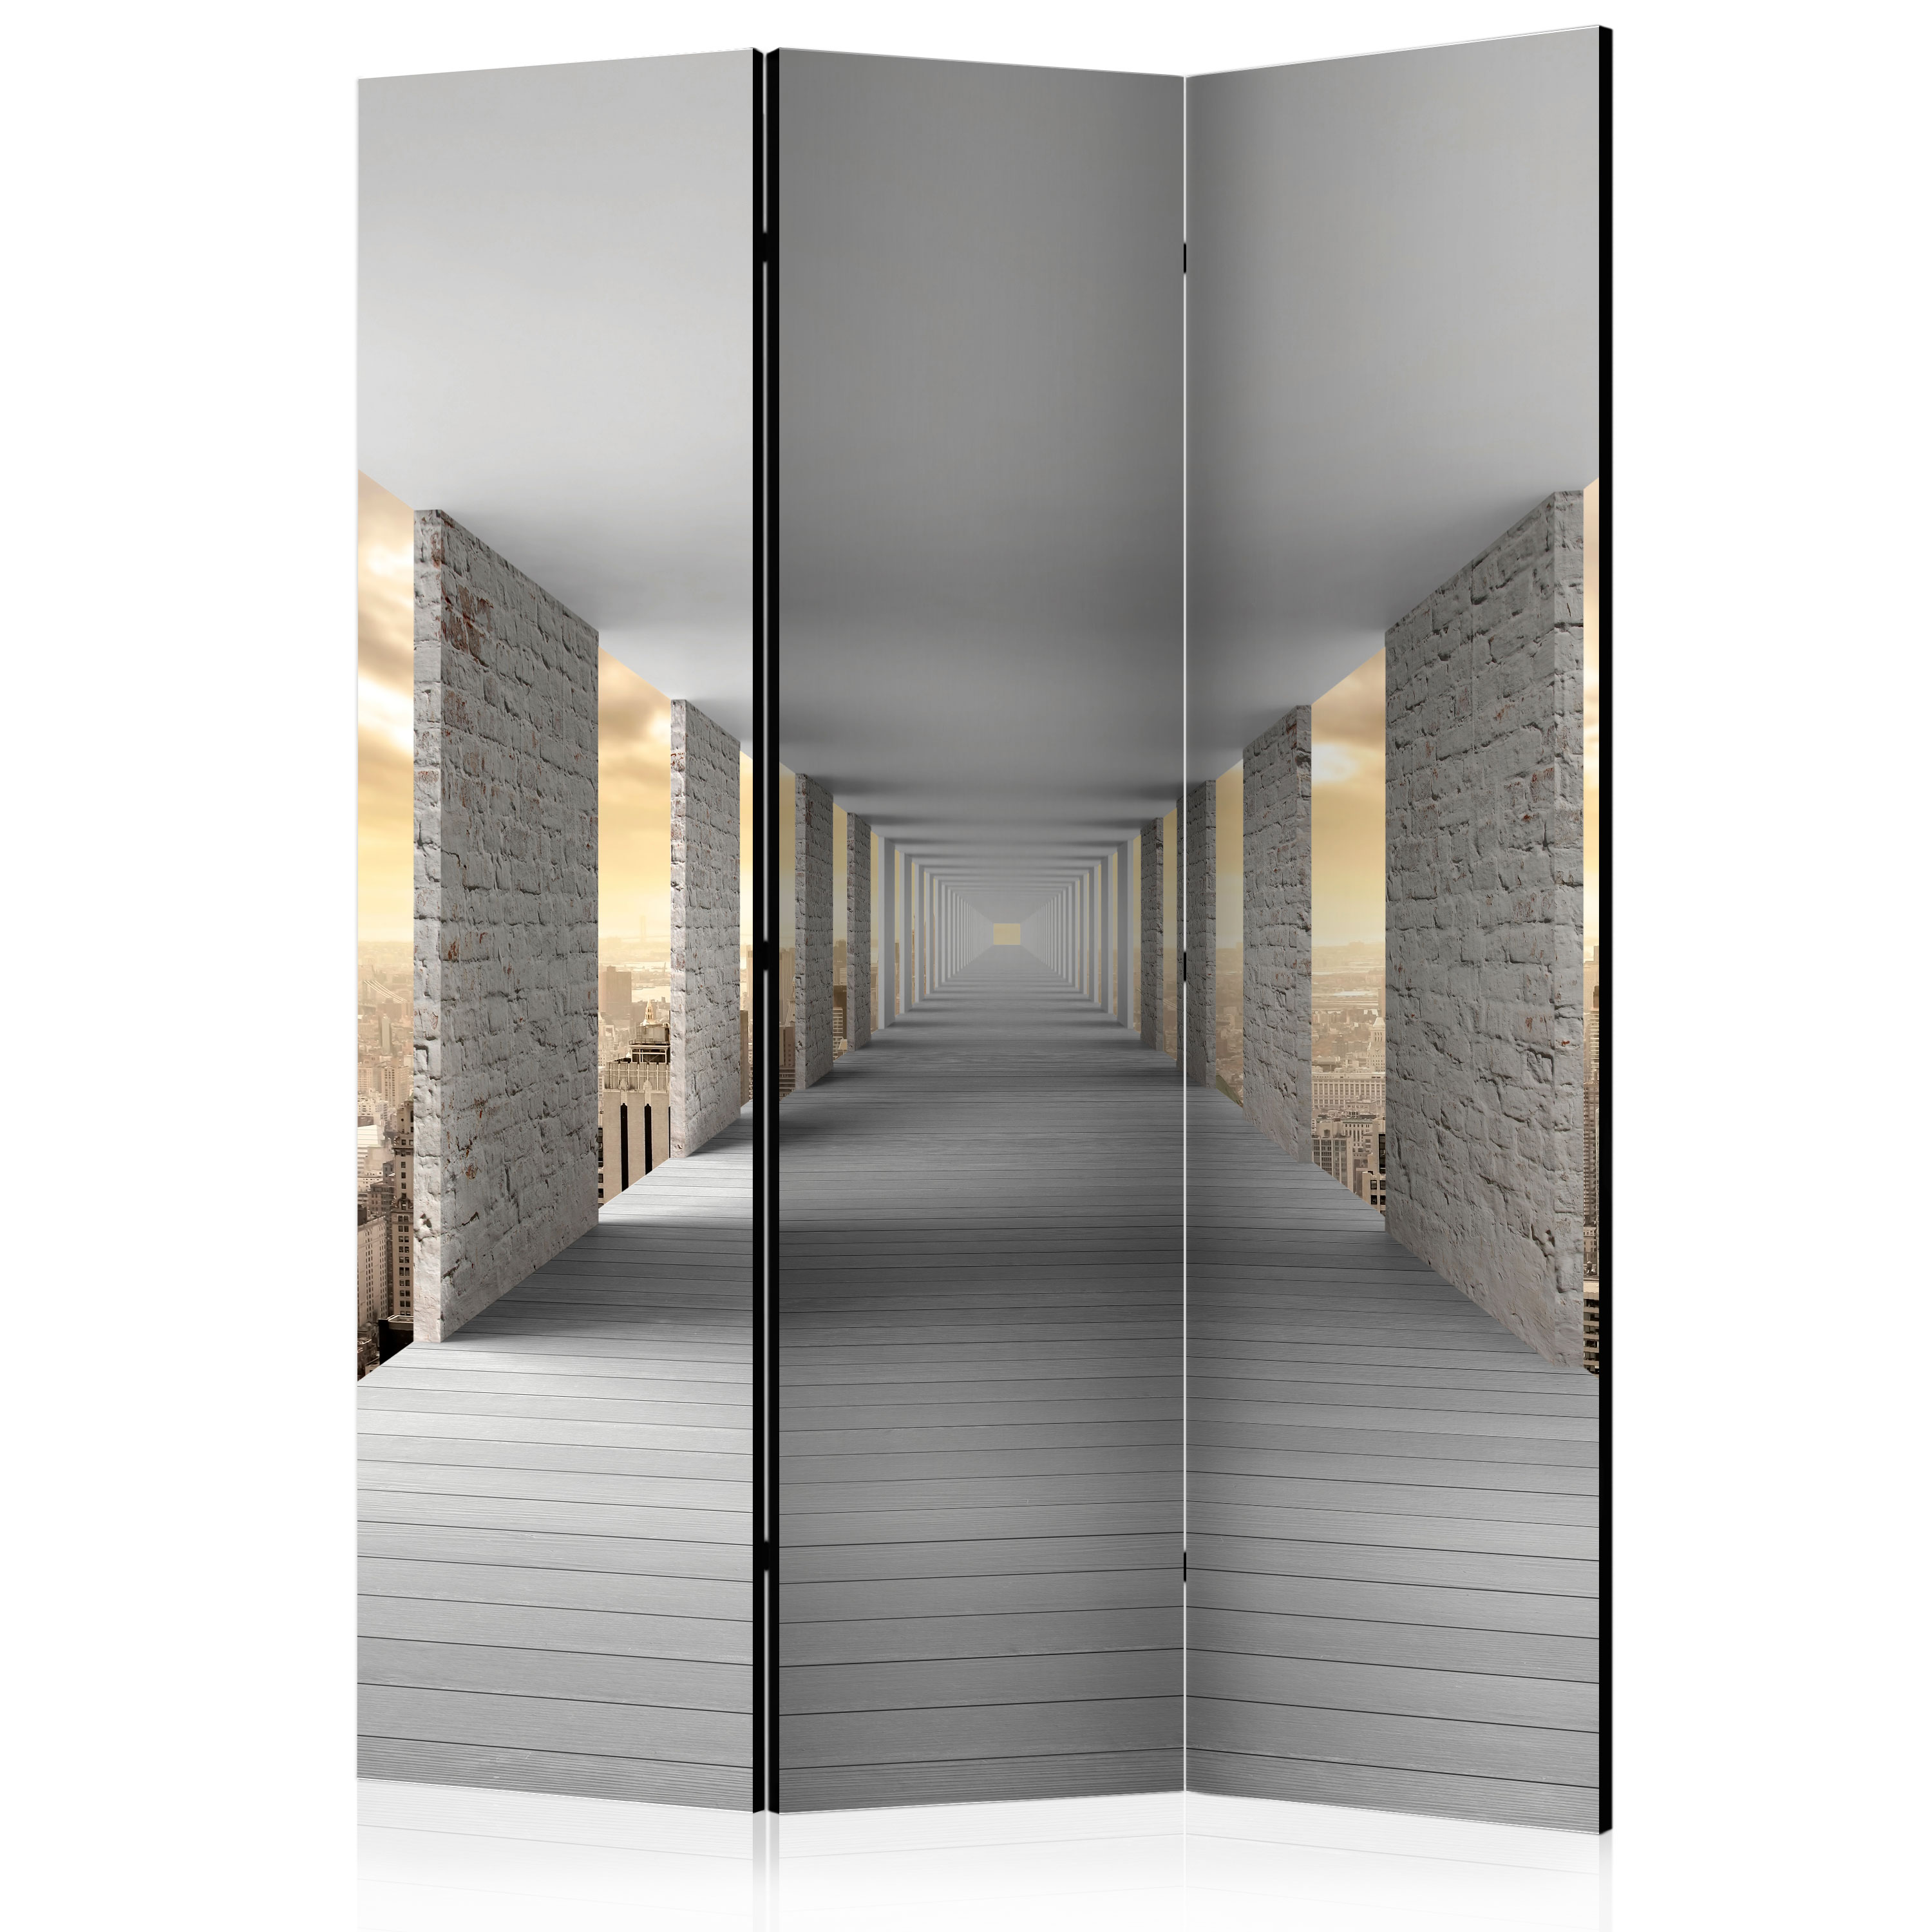 Decorative Photo Folding Screen Wall Room Divider Abstract. Portable Room Air Conditioners Non Vented. Decorative Nuts. Cool Stuff To Buy For Your Room. Fall Decoration. Rooms To Go Computer Desk. Room For Rent West Palm Beach. Decorative Cabinets. Country Cabin Decor